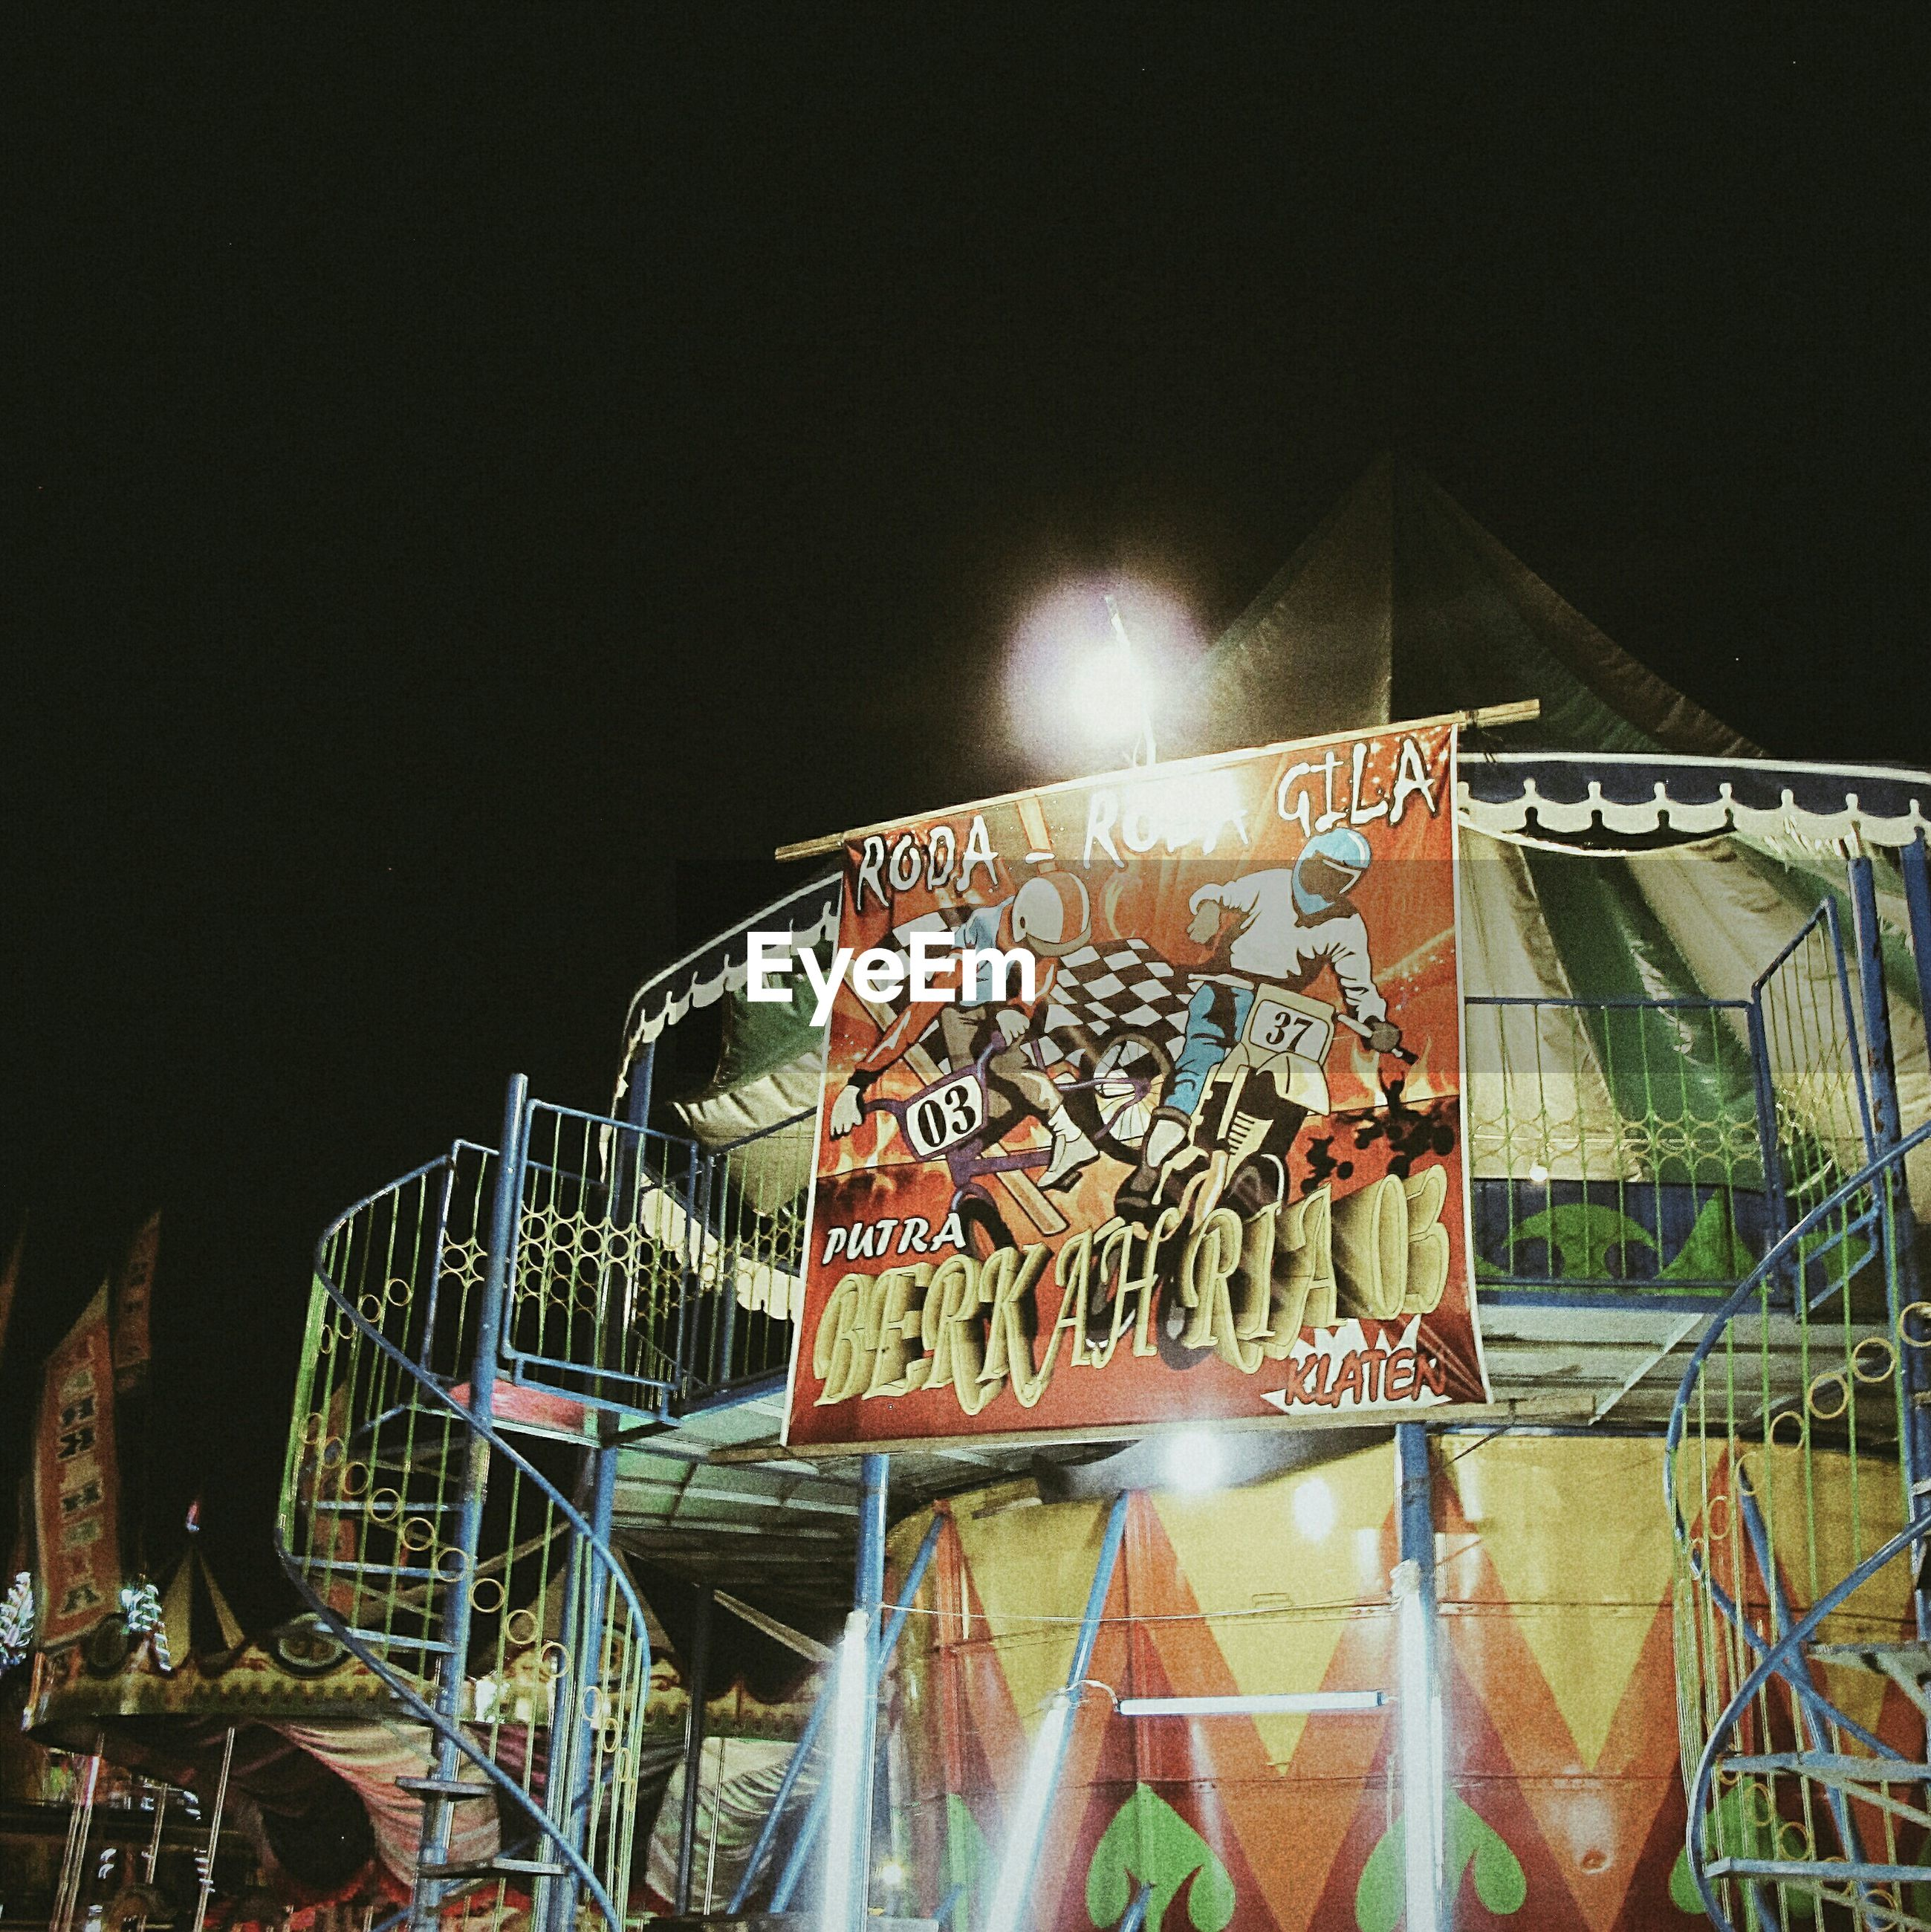 built structure, graffiti, architecture, building exterior, night, bicycle, arts culture and entertainment, outdoors, men, clear sky, art, text, metal, wall - building feature, creativity, illuminated, city, amusement park, low angle view